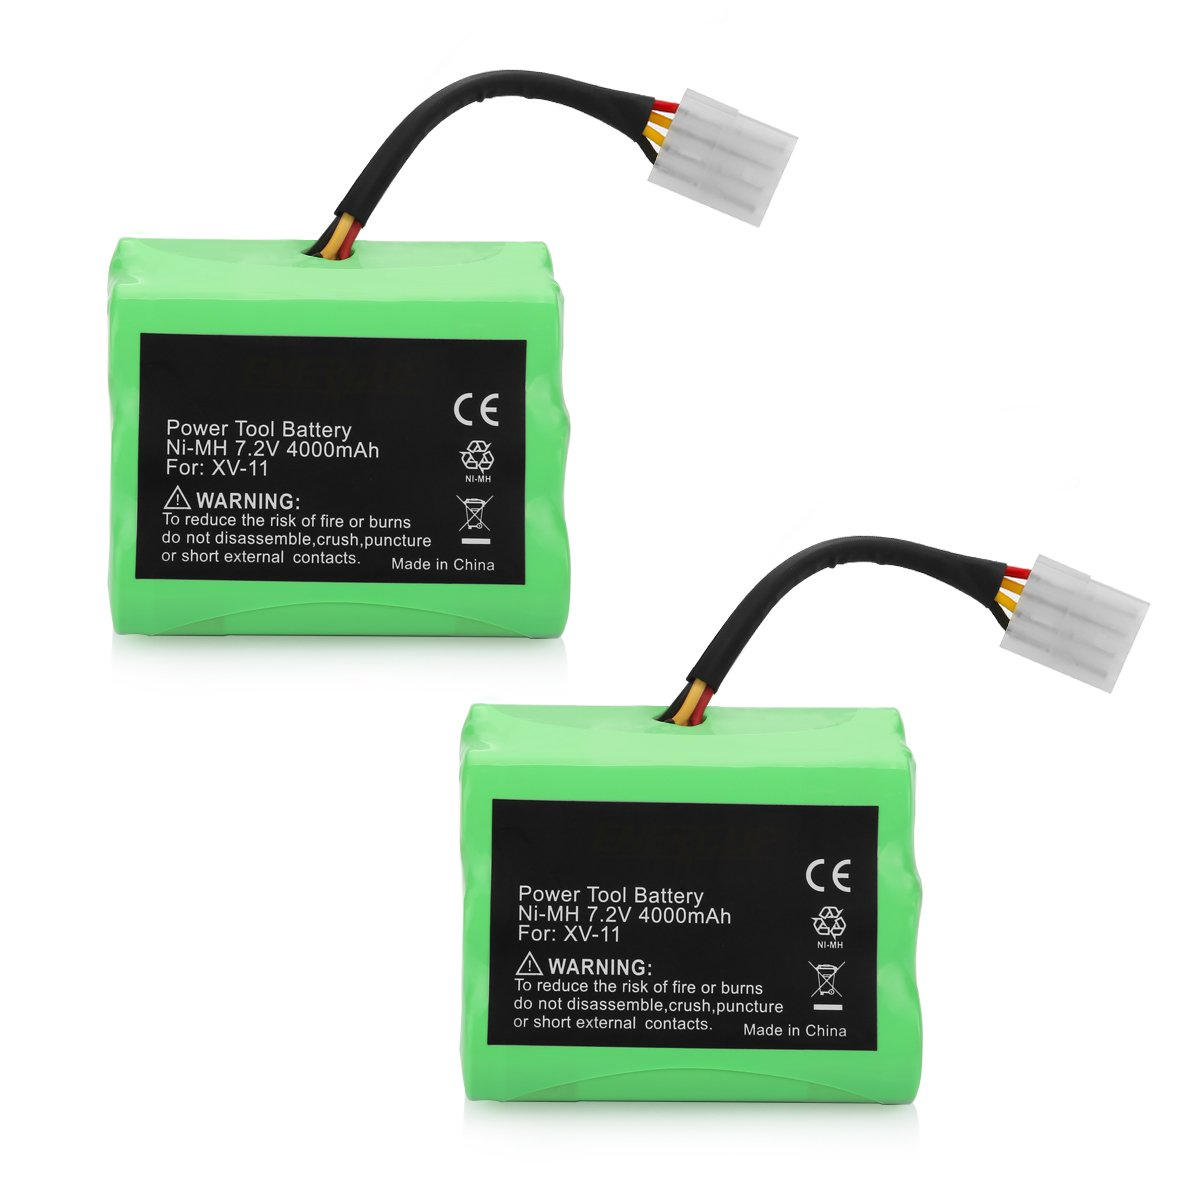 ANTRobut 2 Pack 4000mAh 7.2V Neato Battery Replace for Neato XV-11 XV-12 XV-14 XV-15 XV-21 XV-25, XV Essential, XV Signature Pro Robotic Vacuum Cleaners Replacement Neato Battery 945-0005 205-0001 by ANTRobut